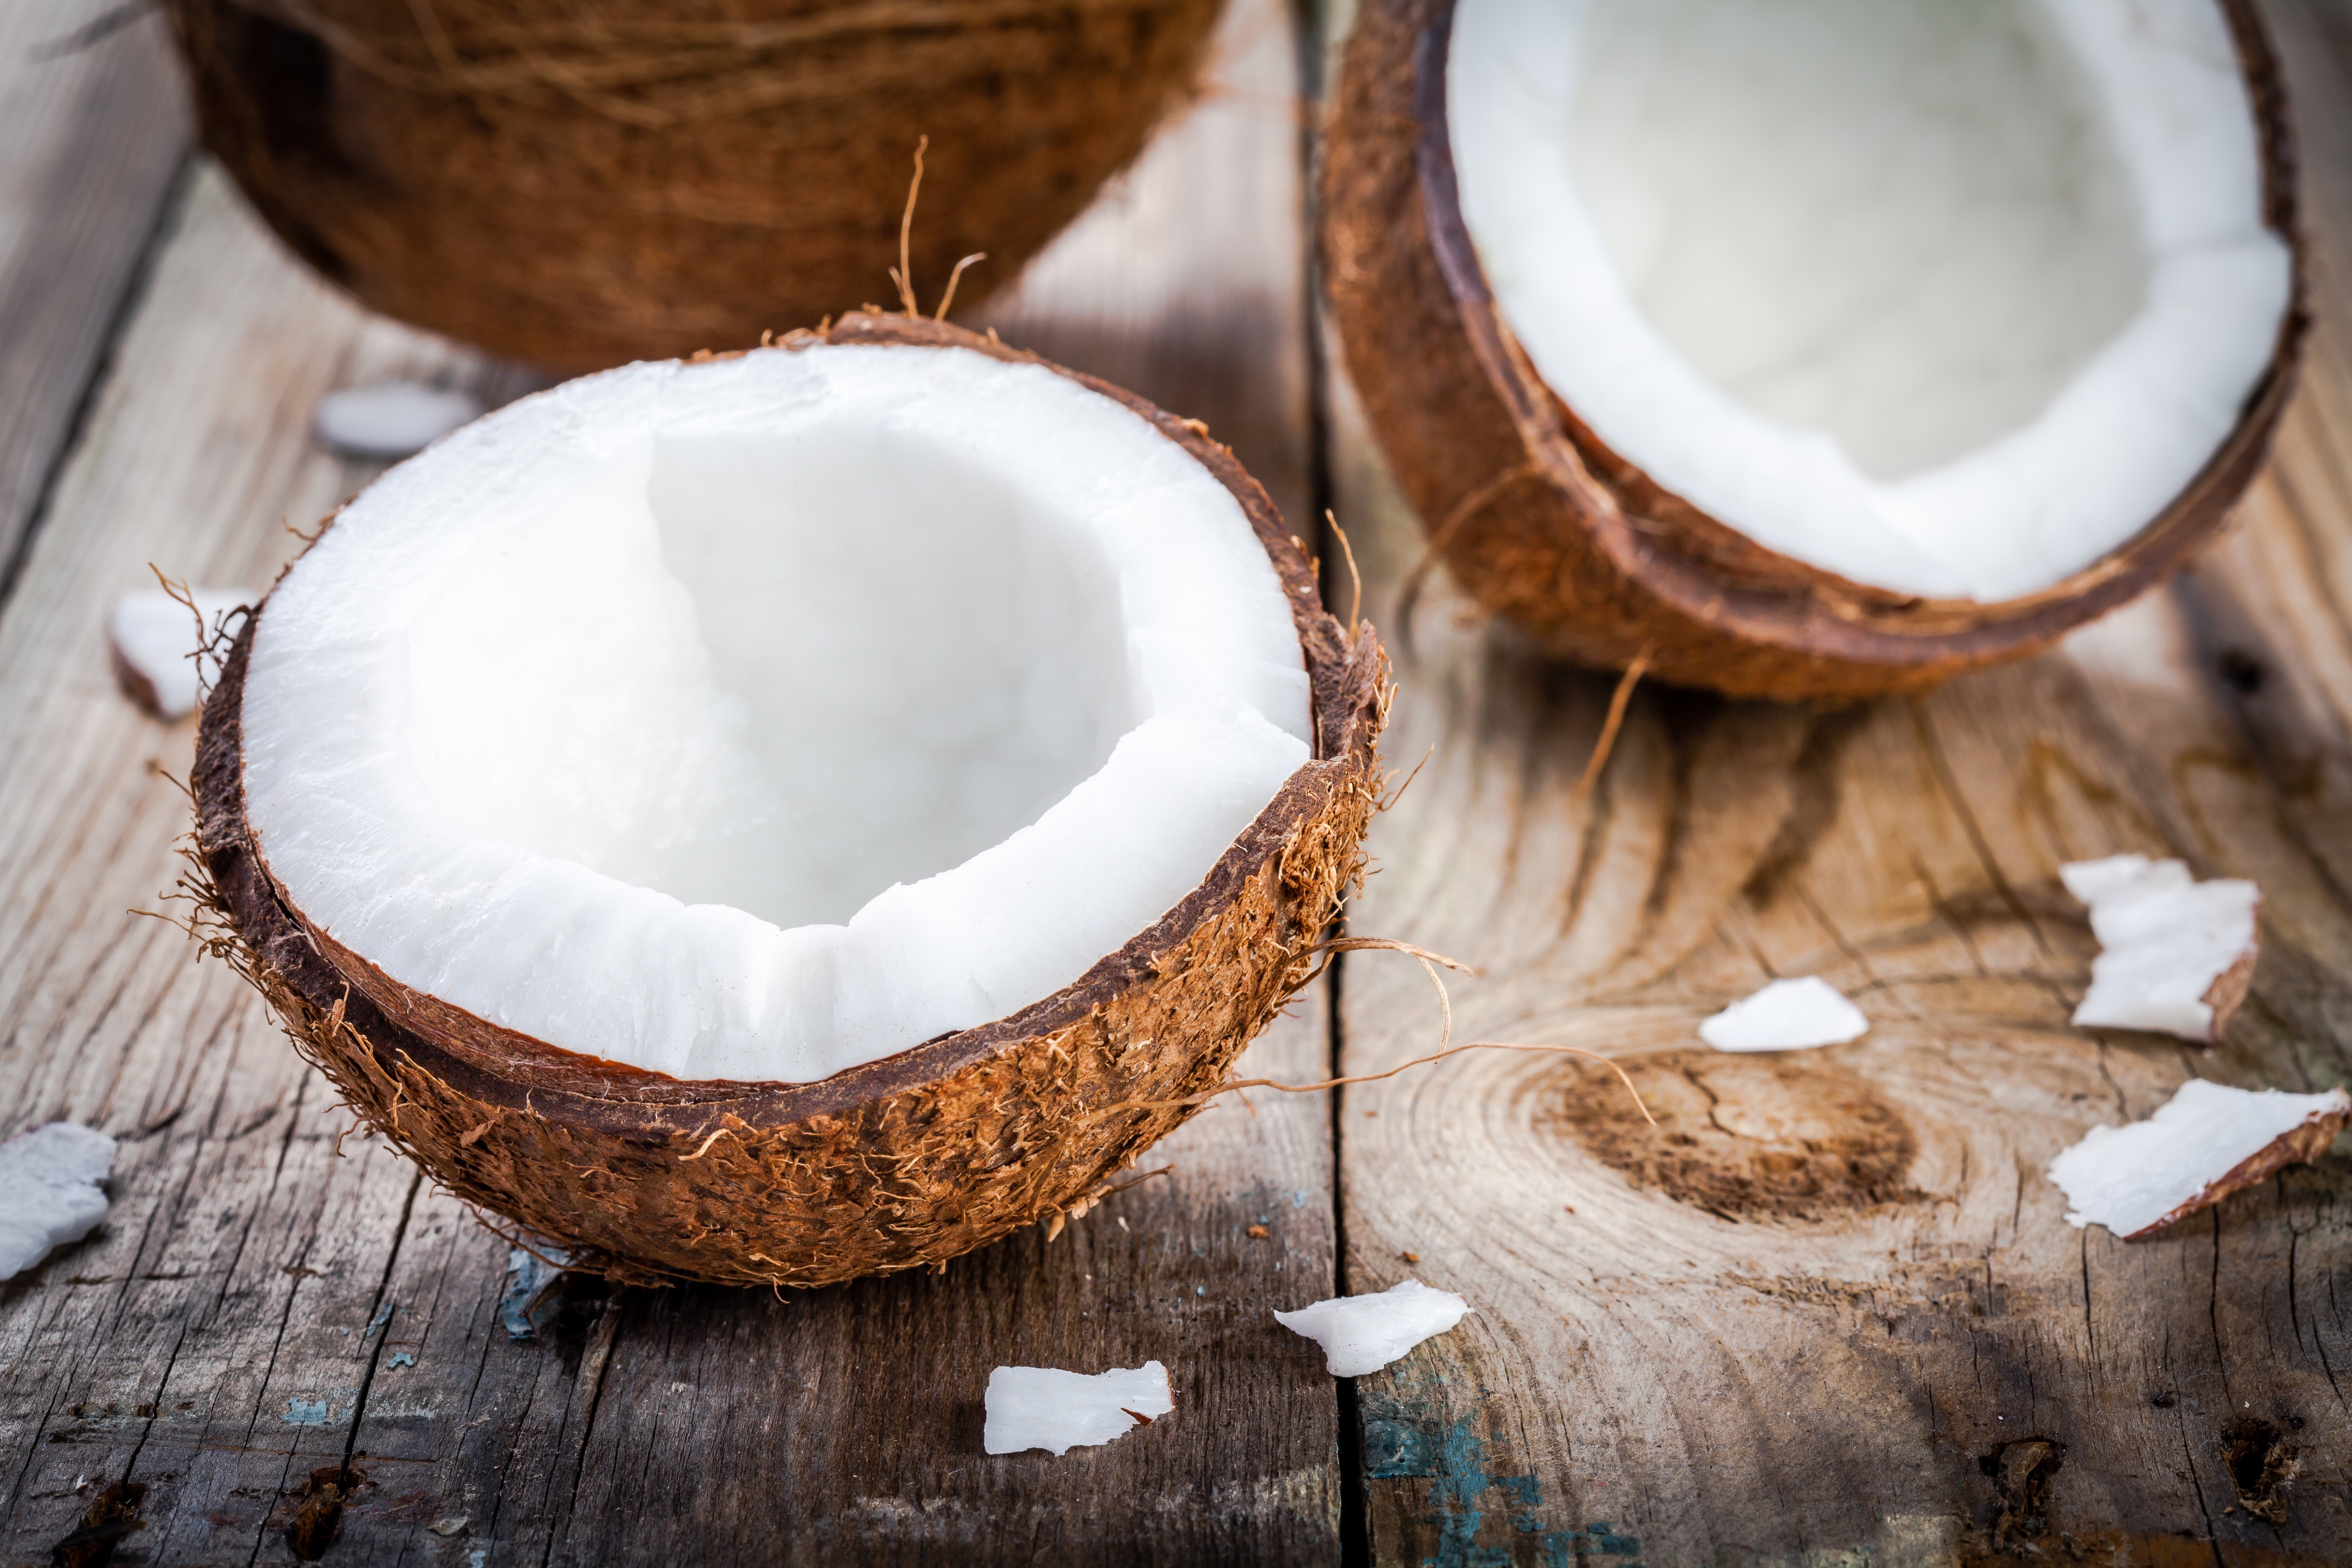 best uses for coconut - coconut oil uses - uses for coconut oil - coconut oil - cooking - healthy eating - health - superfood -superfoods - coconut - healthy cooking - baking - nutrition - superfruit